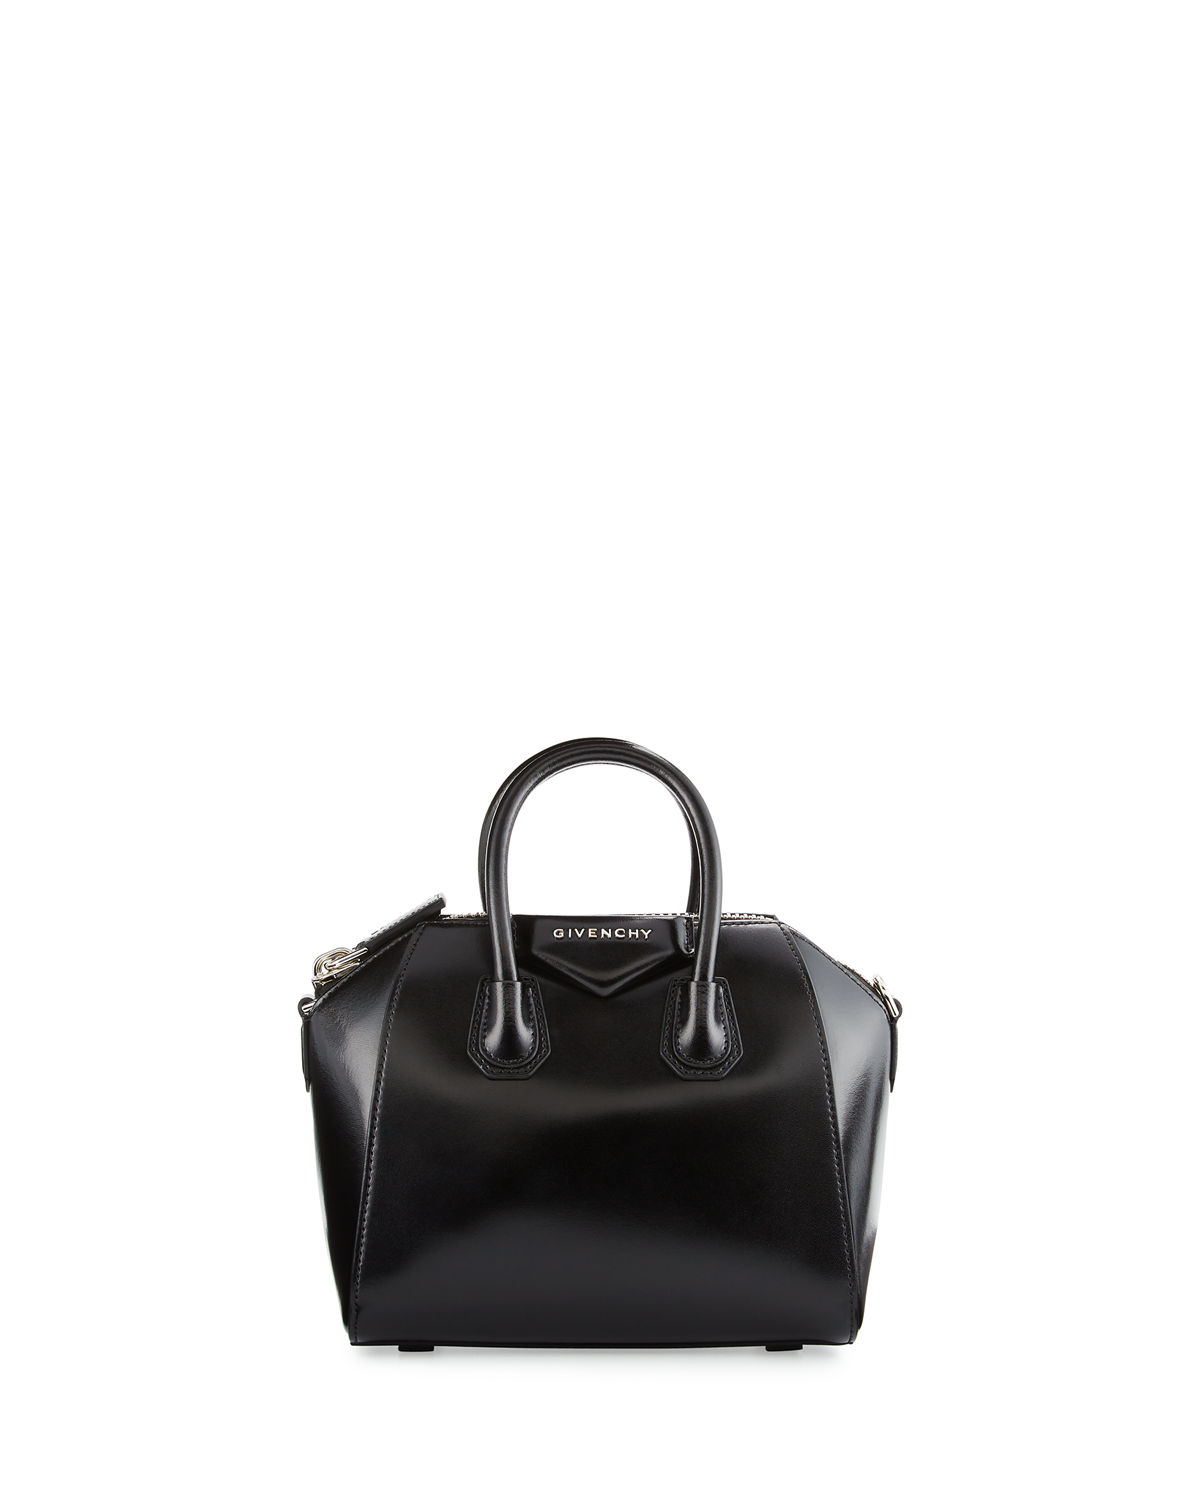 2e0edcea21 Givenchy Antigona Mini Box Calfskin Satchel Bag | Neiman Marcus